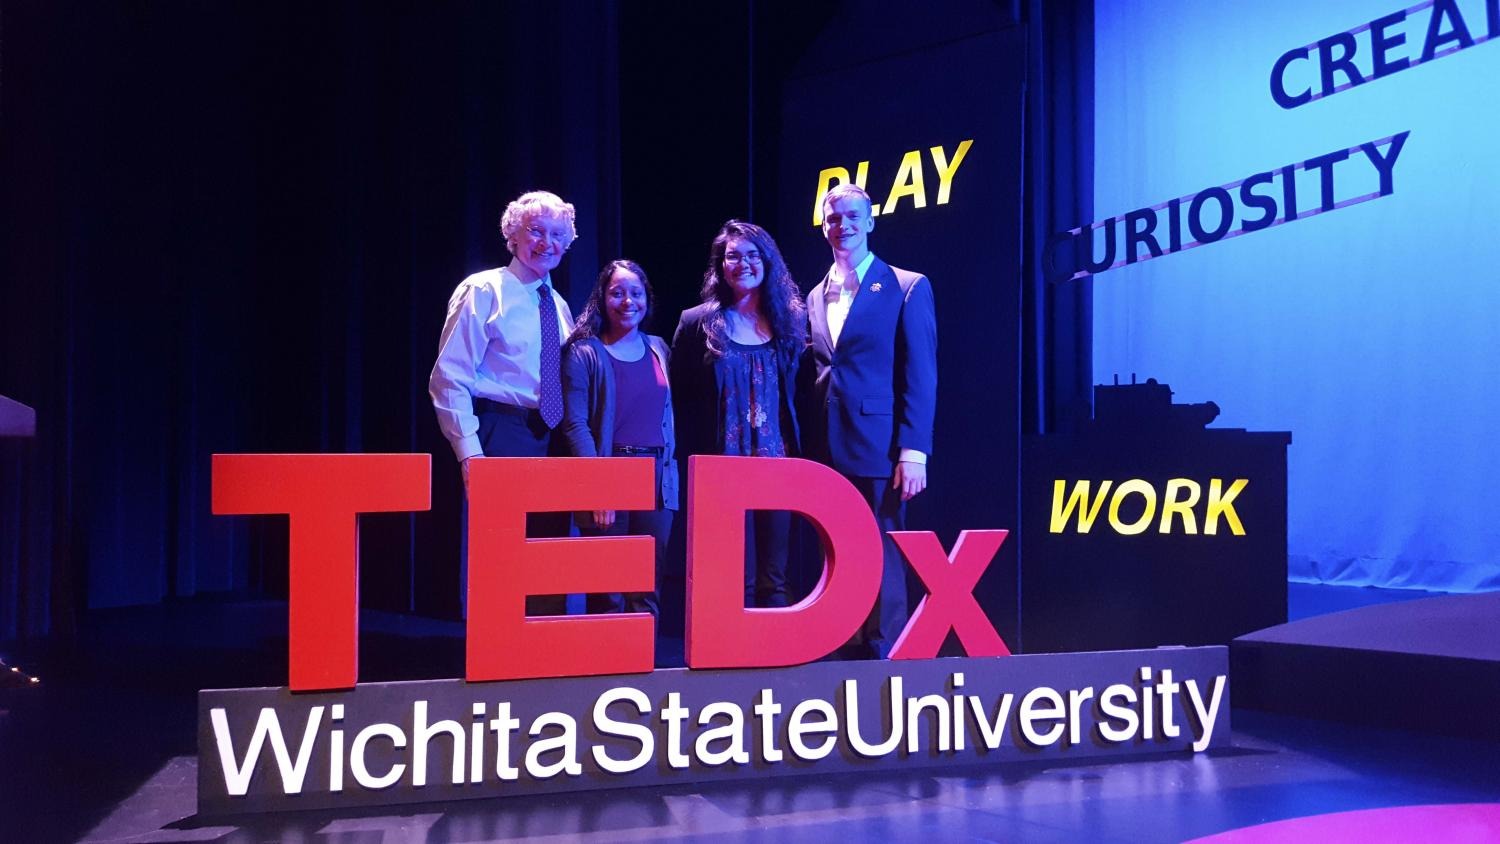 TEDx speakers (from left to right) Dave Dahl, Aja Molinar and Christine Fuston and emcee Sam Belsan. Dahl, Molinar and Fuston presented in the second block of TEDxWichitaStateUniversity on Thursday.